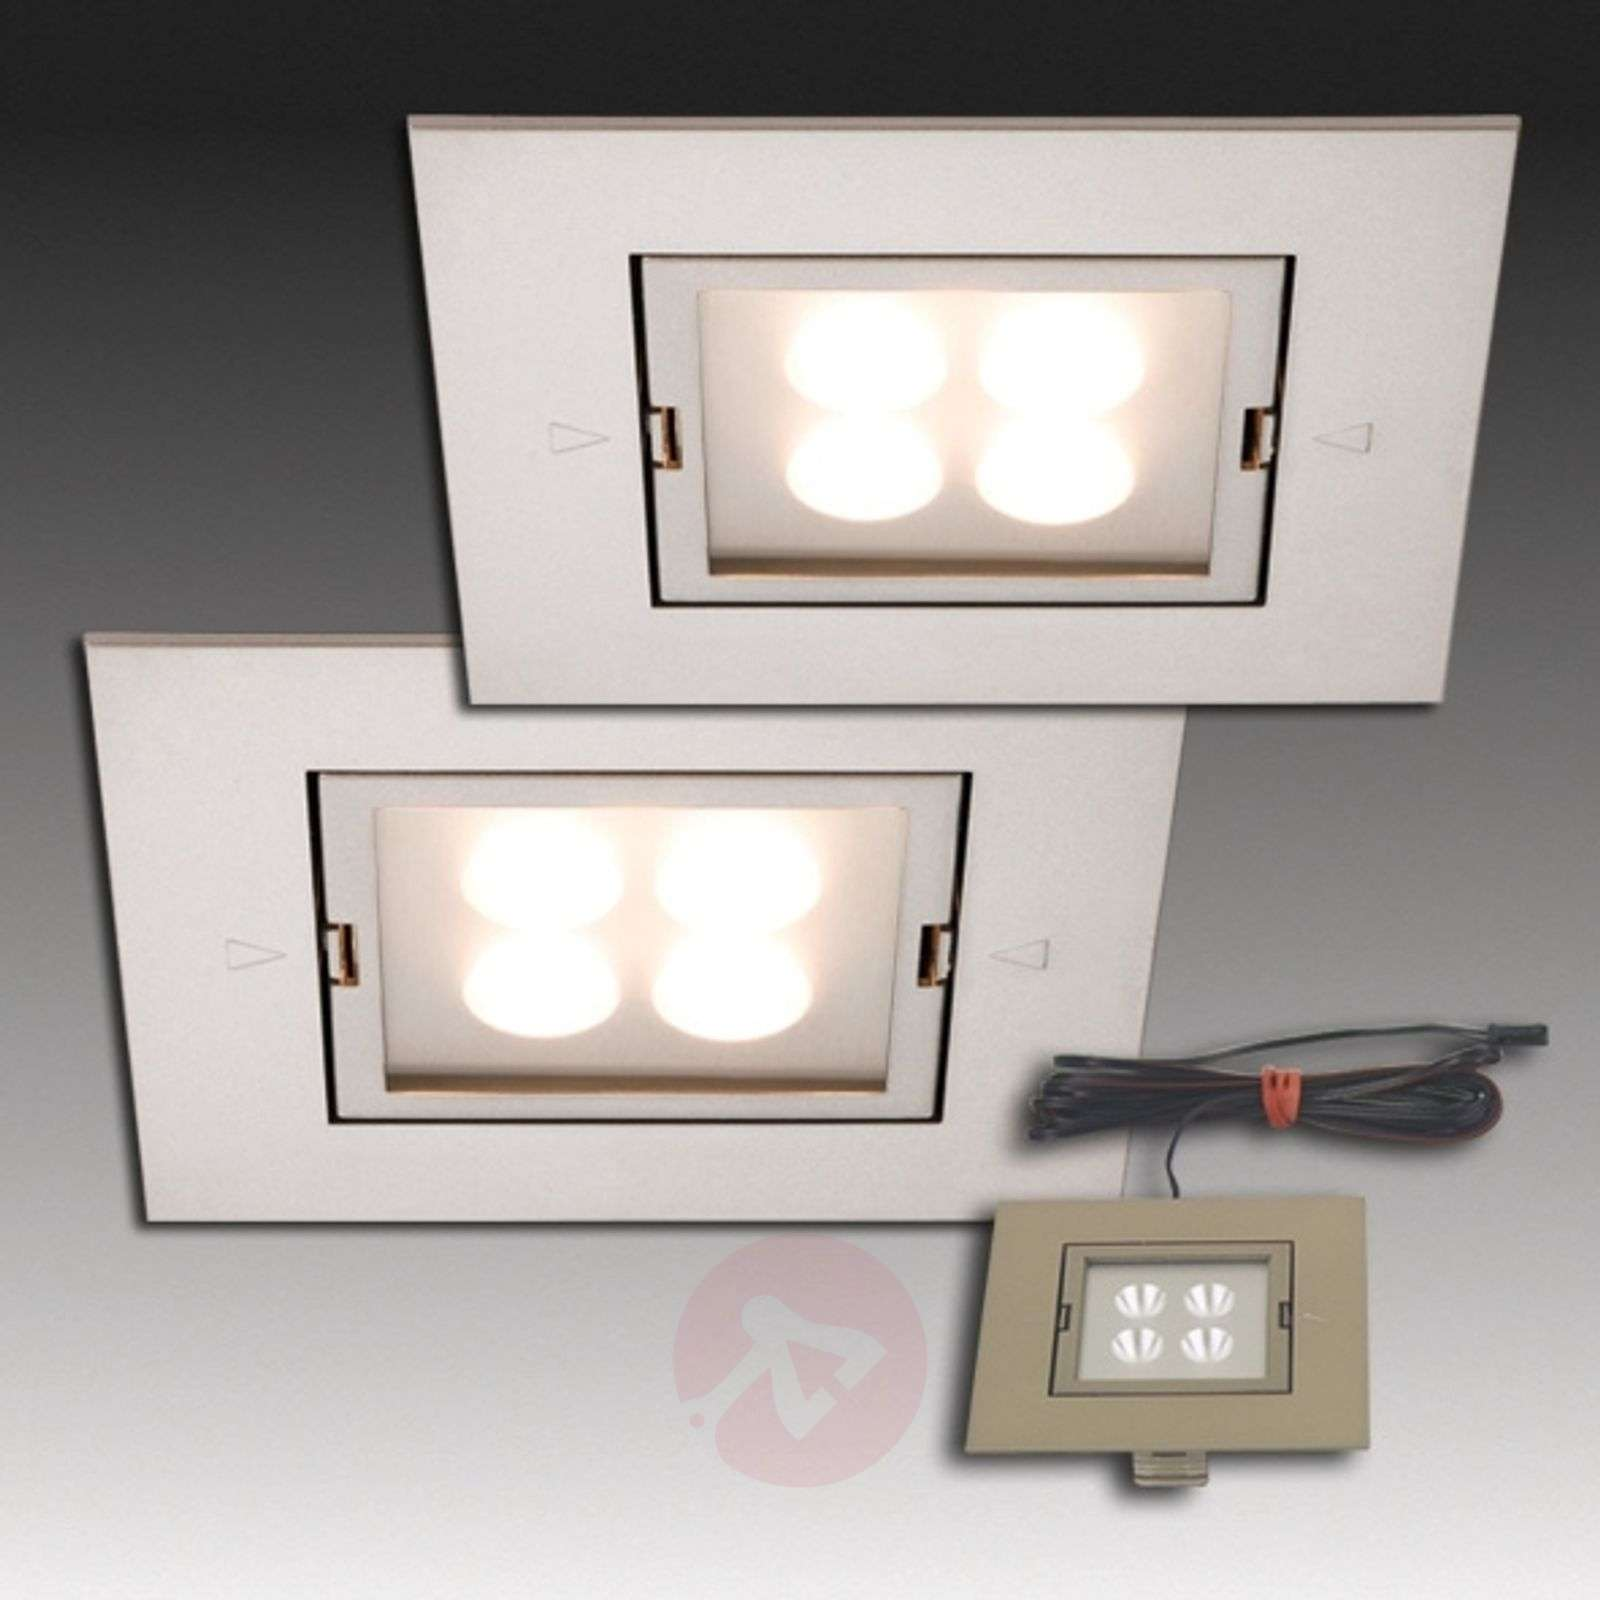 ... ARF-Q LED recessed light set of 2 stainless steel-4514070-01 ... & ARF-Q LED recessed light set of 2 stainless steel | Lights.co.uk azcodes.com